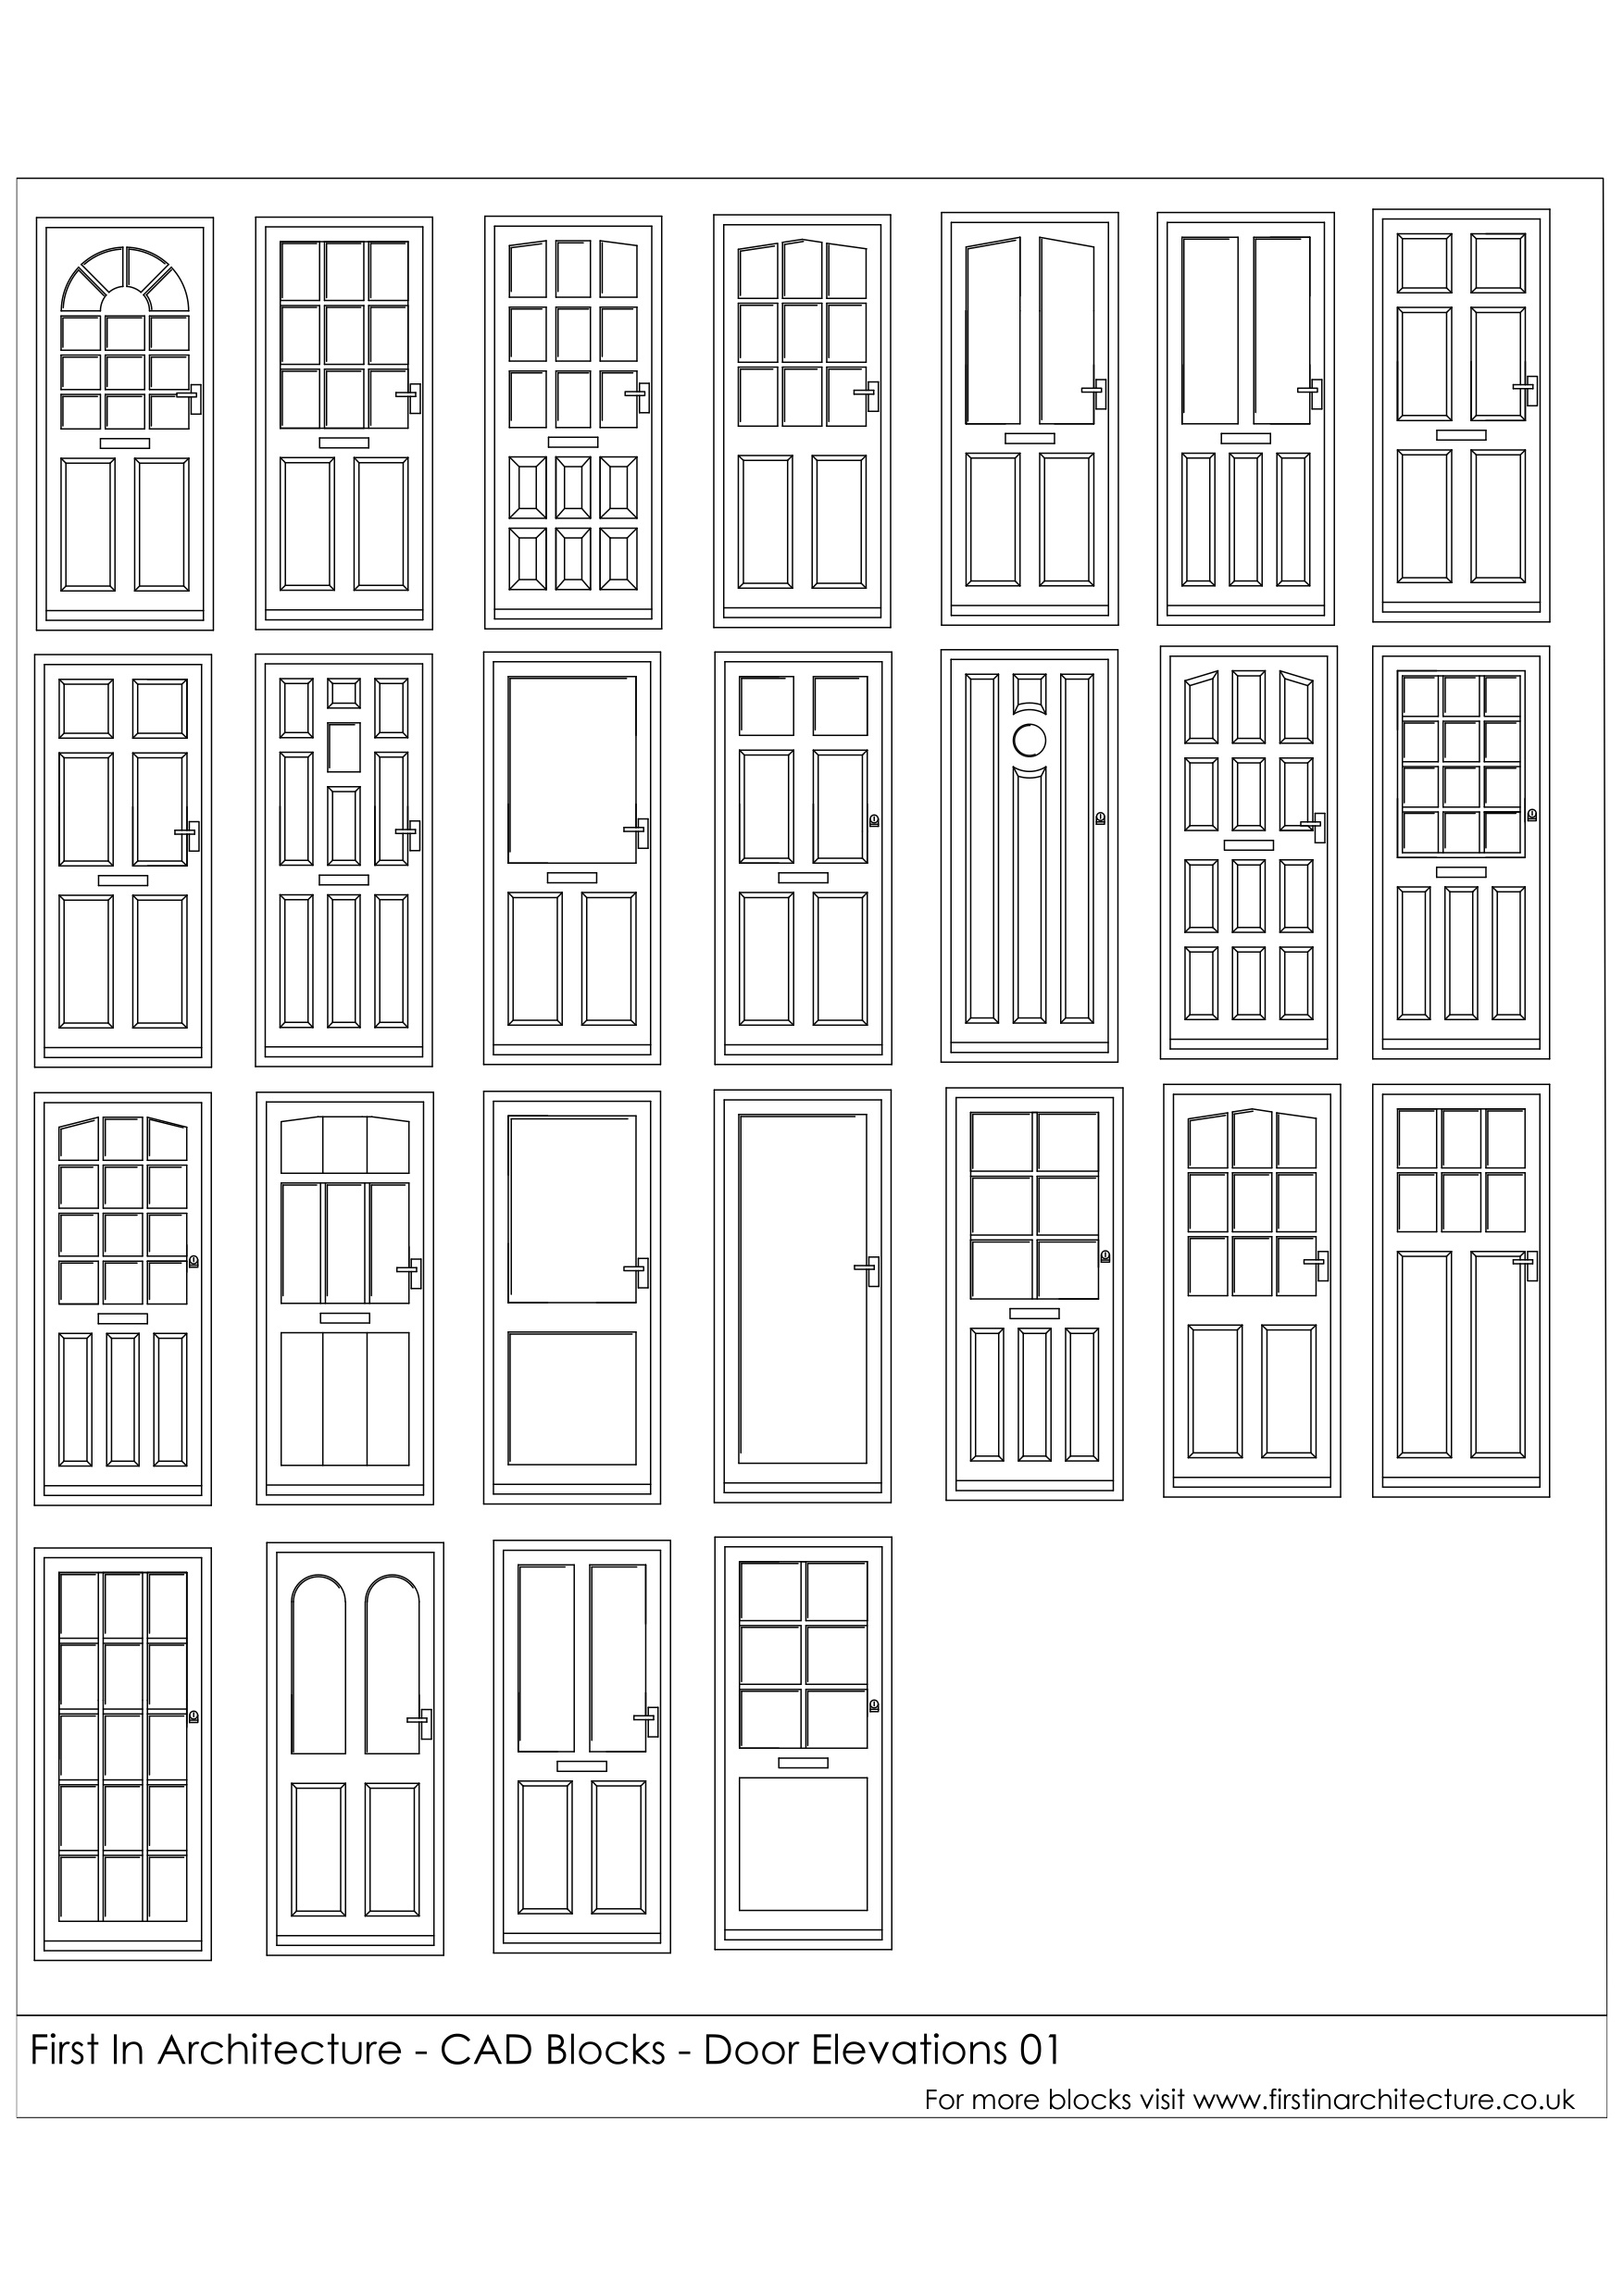 Free cad blocks door elevations for Online cad drawing